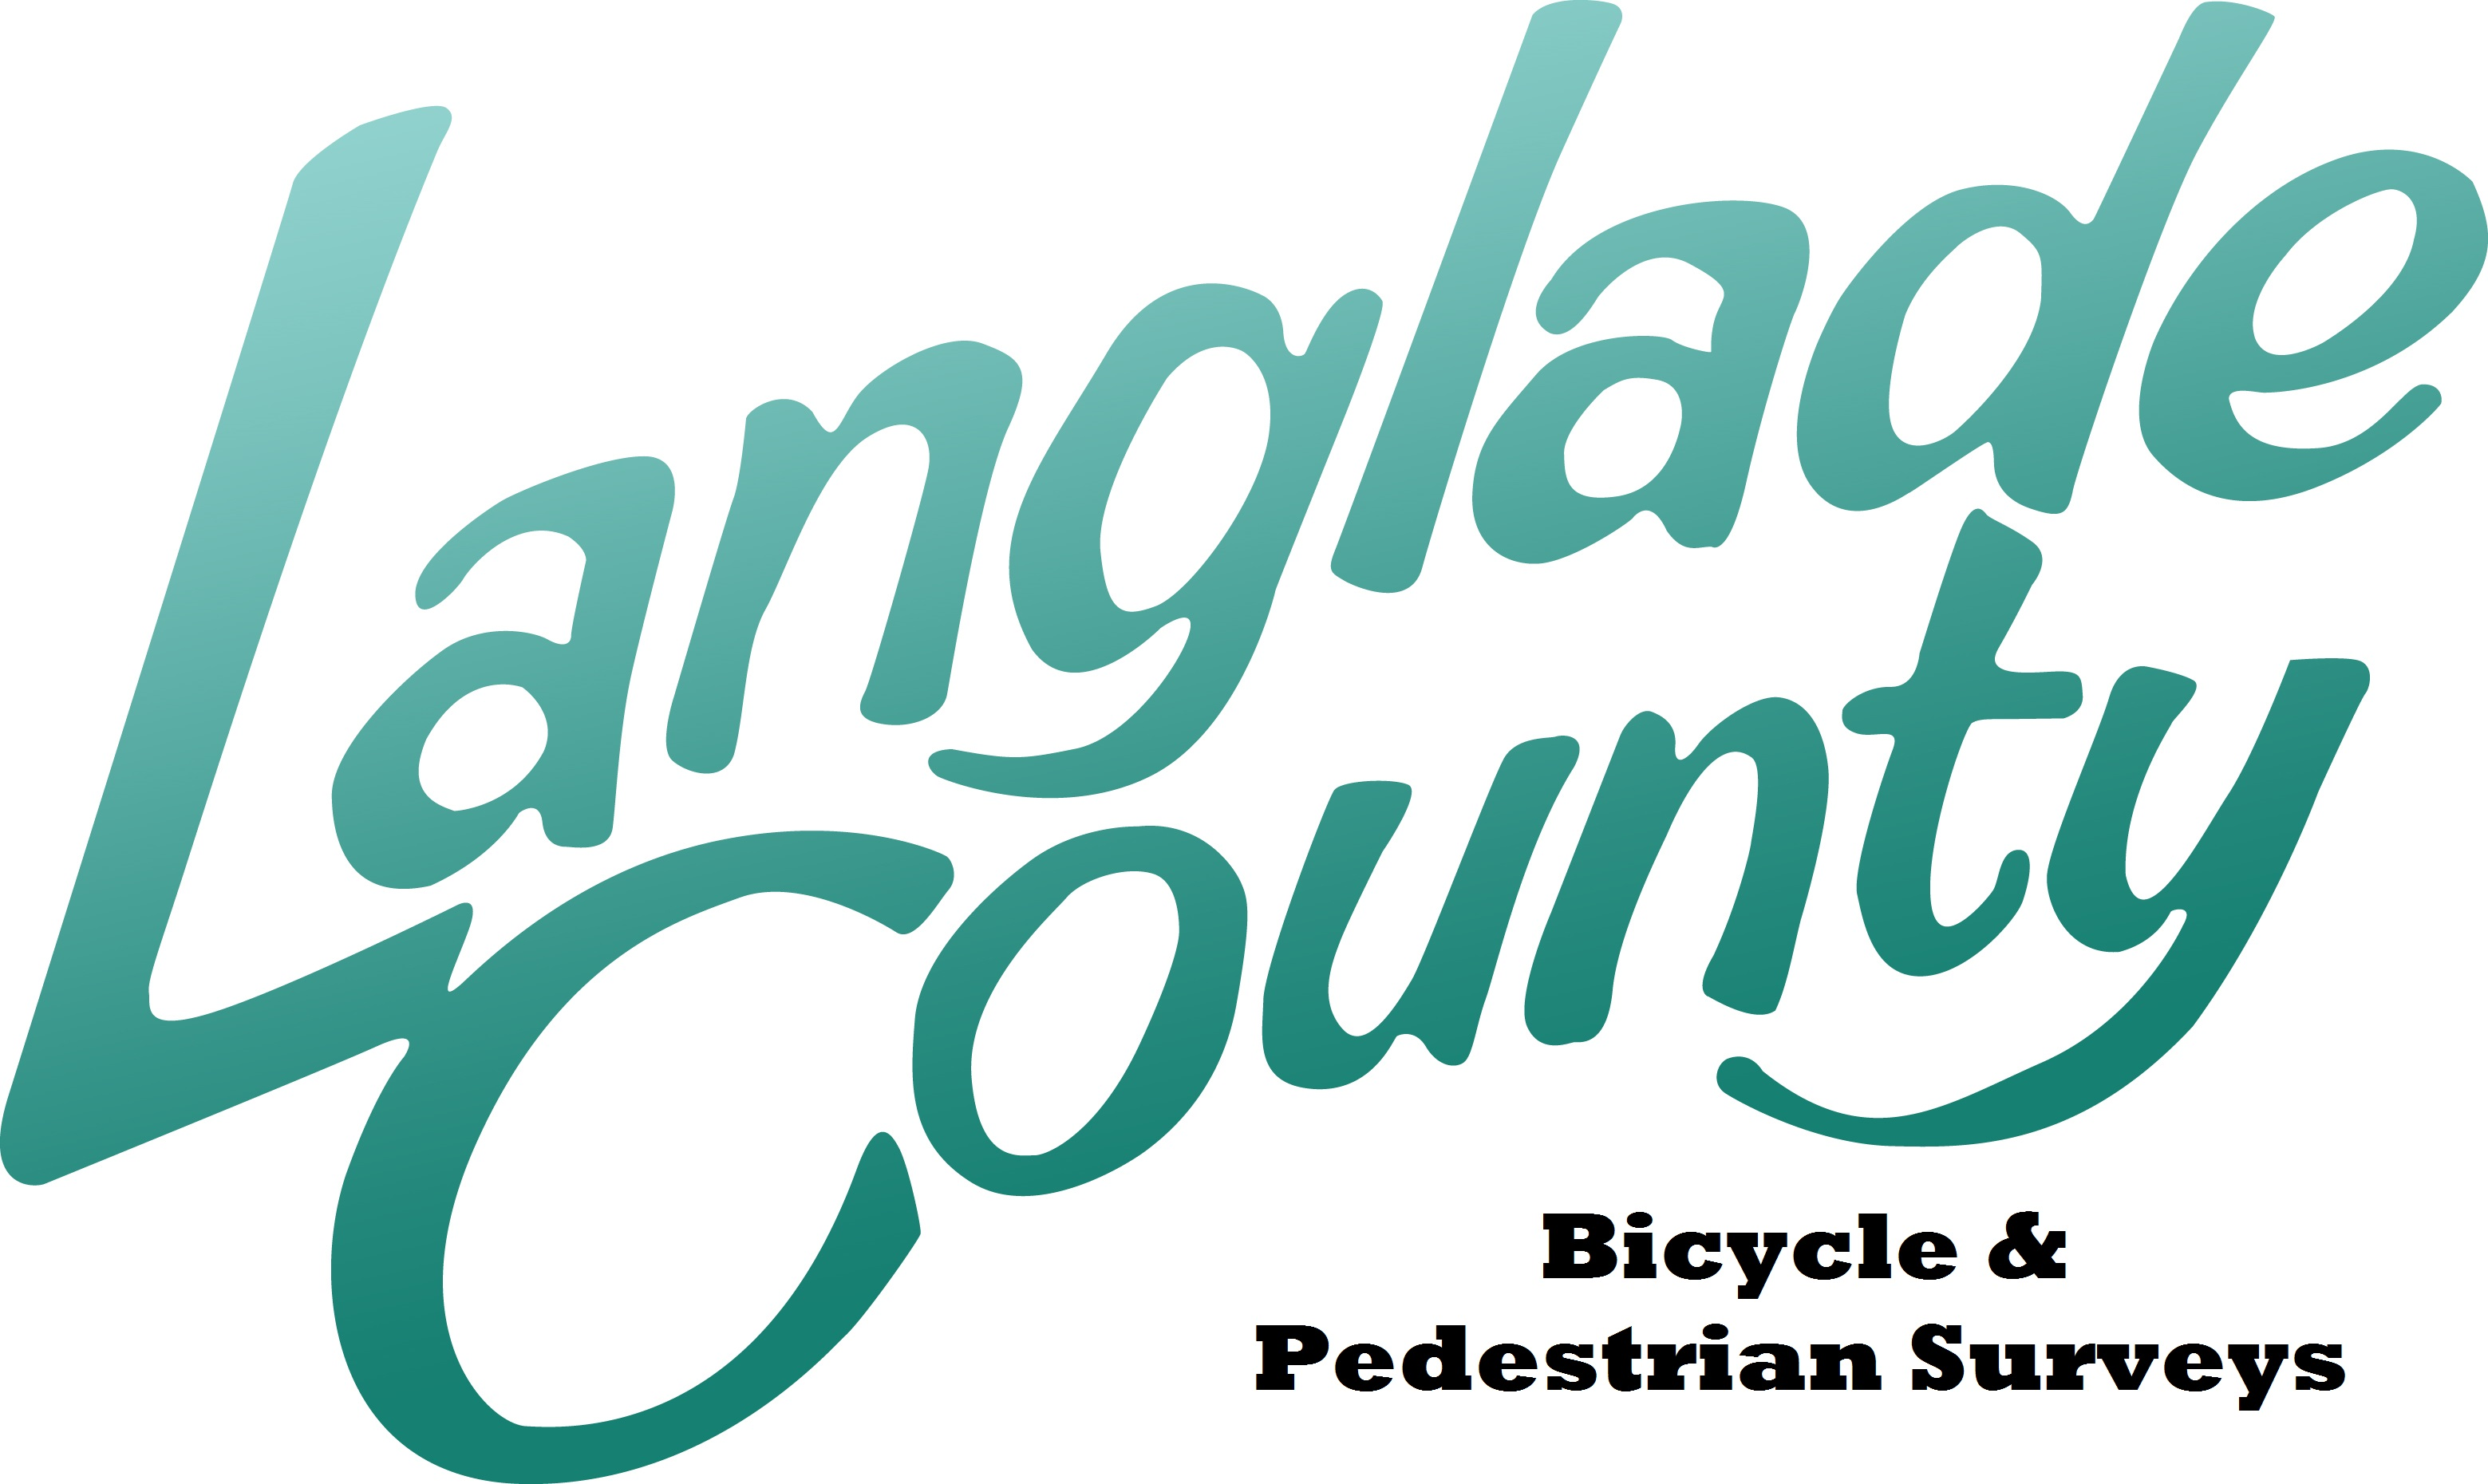 Langlade County Bicycle & Pedestrian Surveys